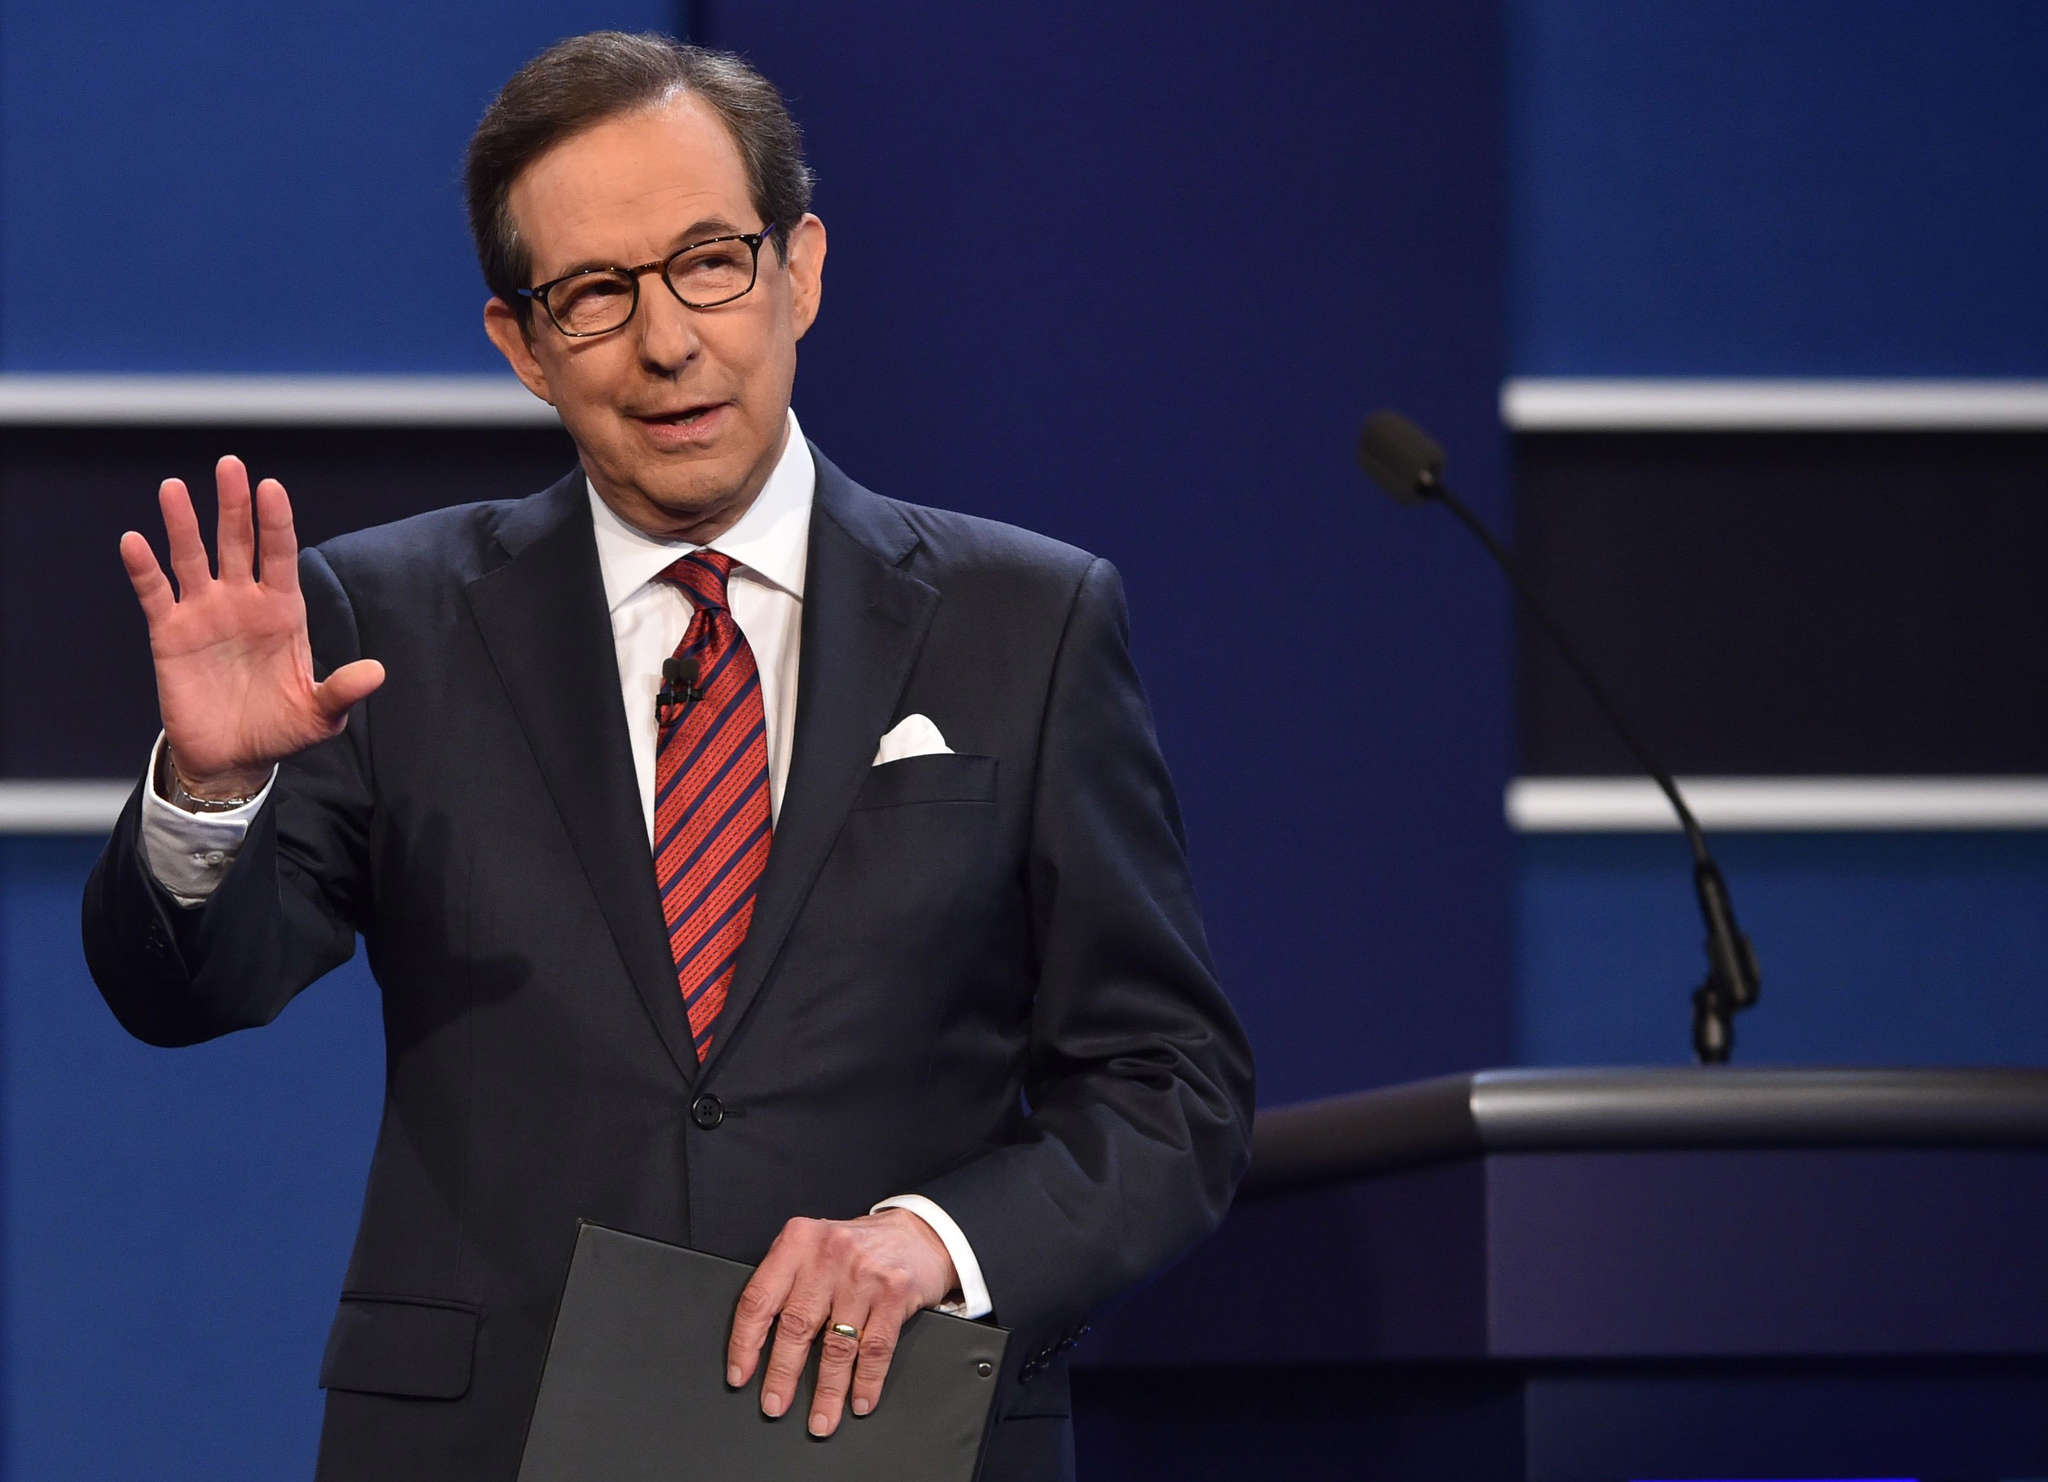 Fox News anchor and commentator Chris Wallace  presided over the least circuslike of the three presidential debates,